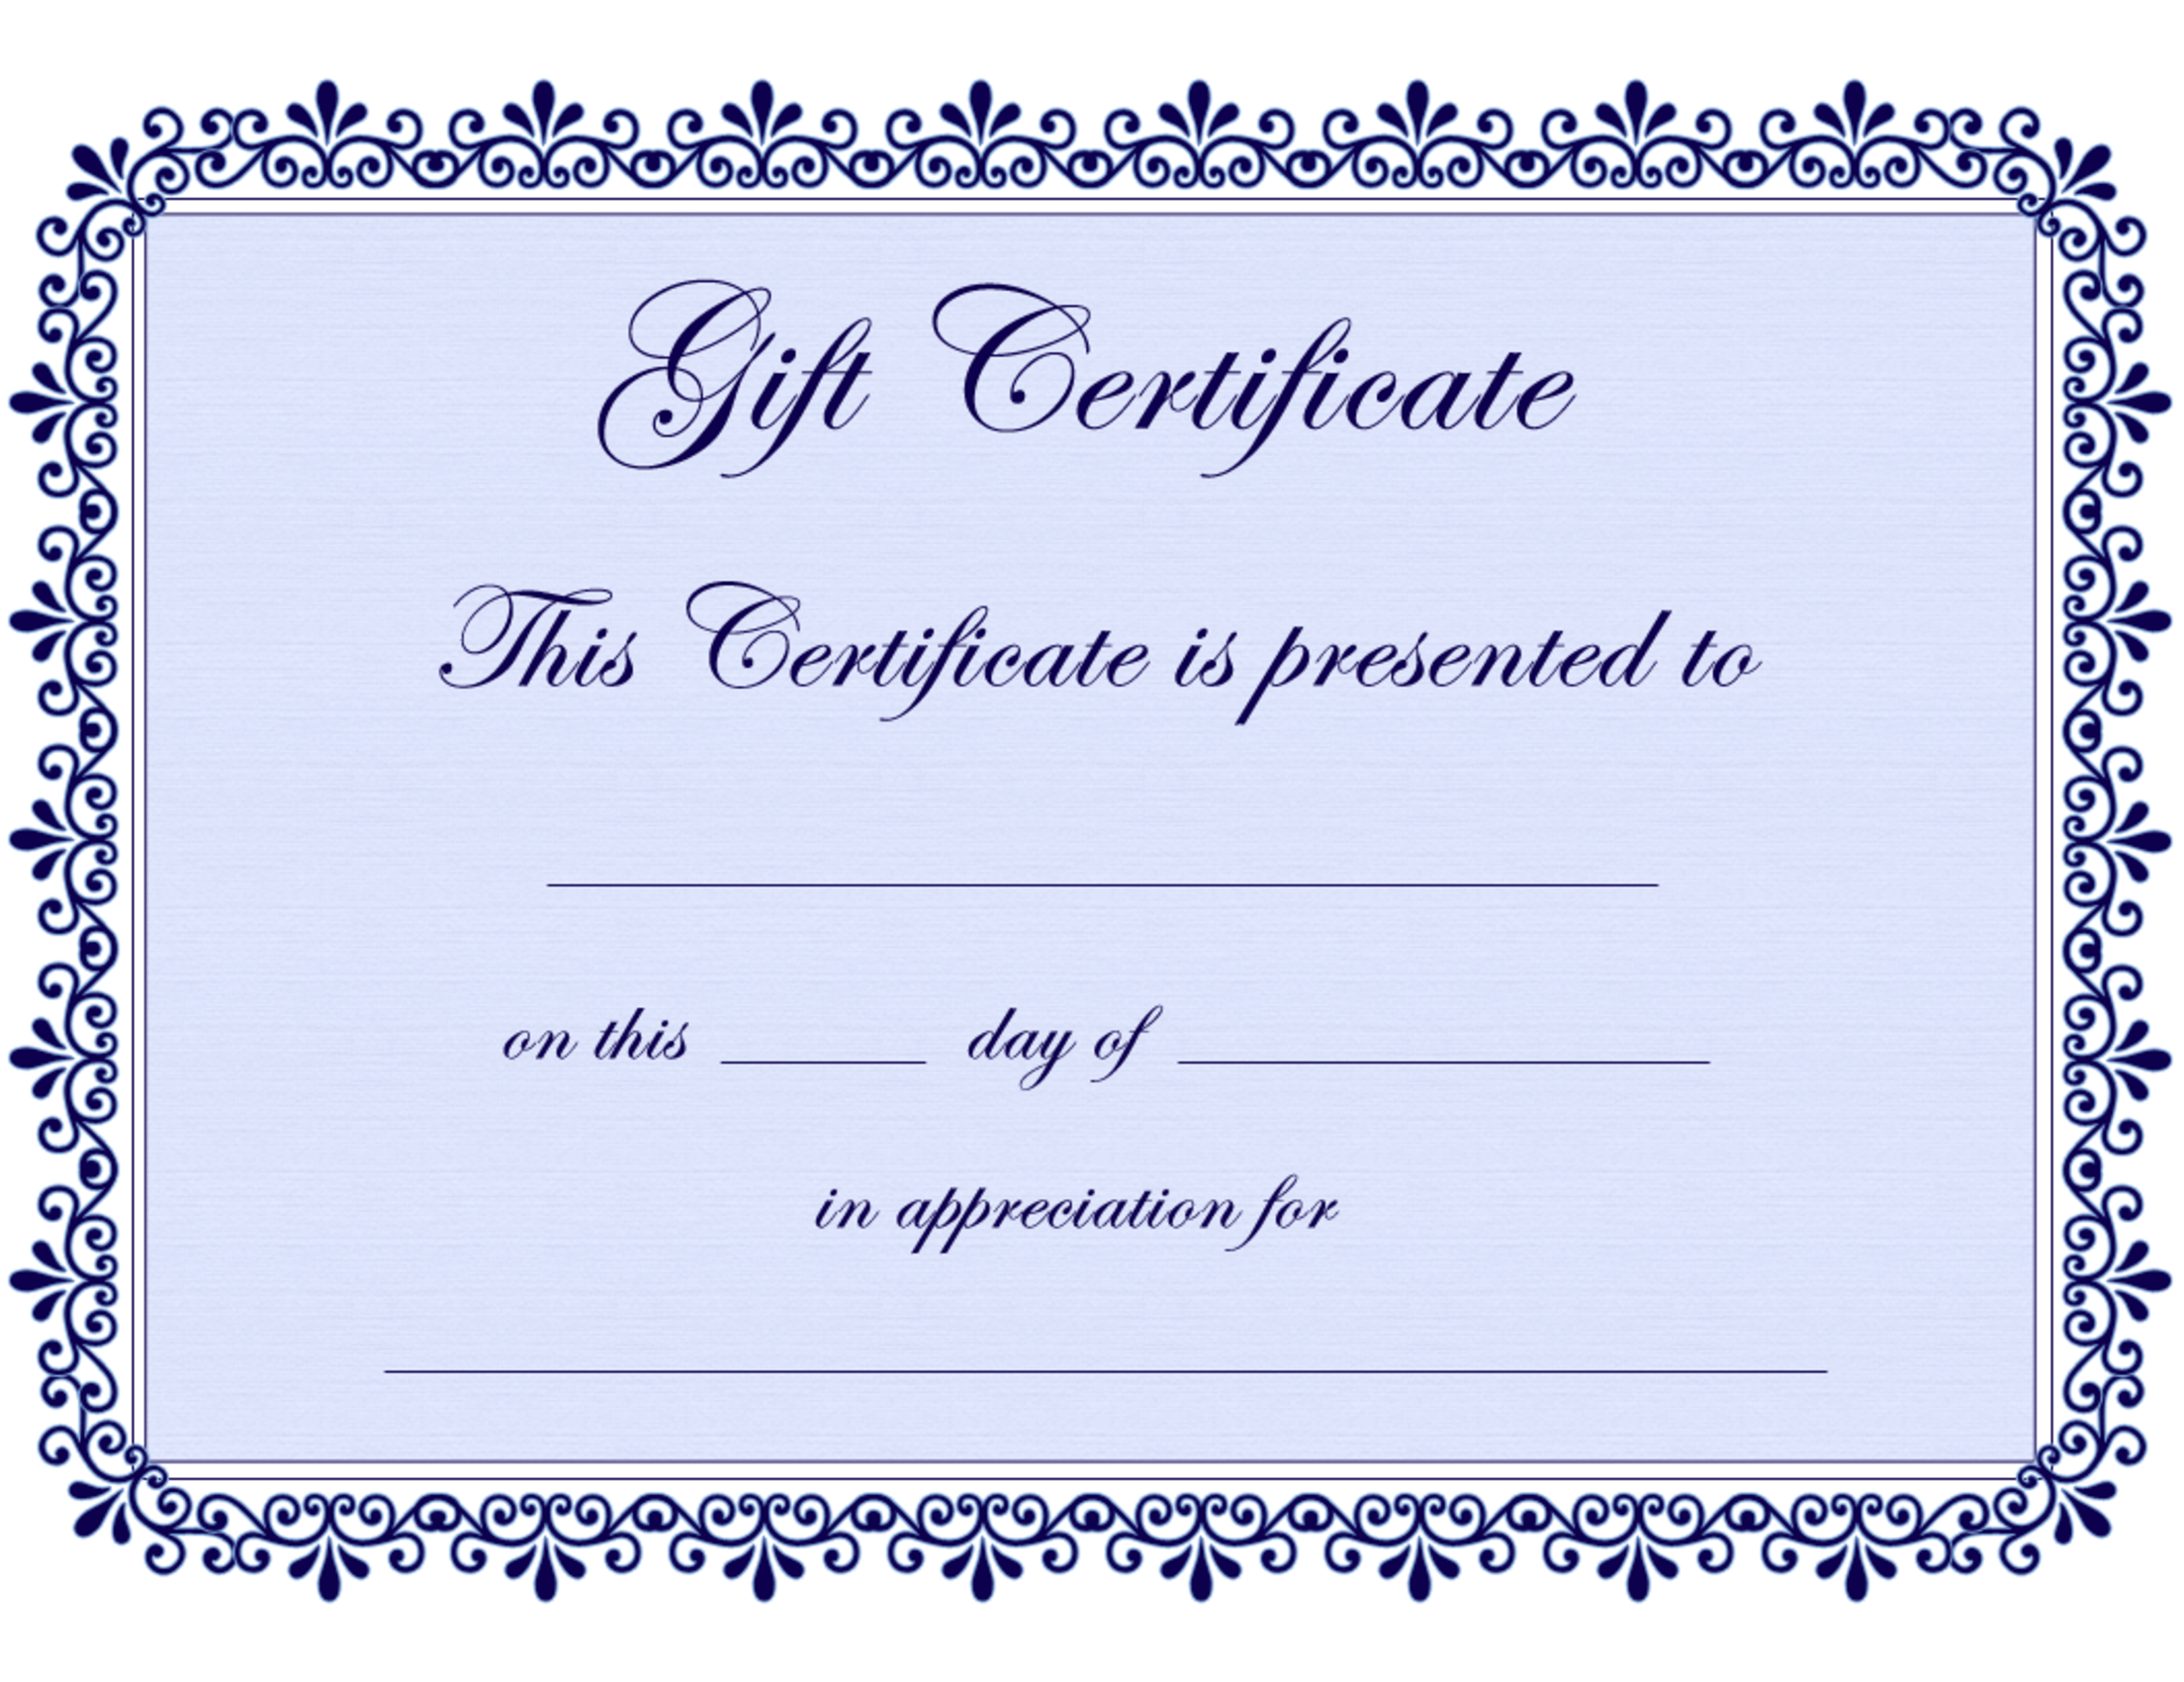 Certificate templates gift certificate template free pdf printable babysitting coupon template clipart best generic gift certificates with pictures gifts blue yellow 1betcityfo Gallery